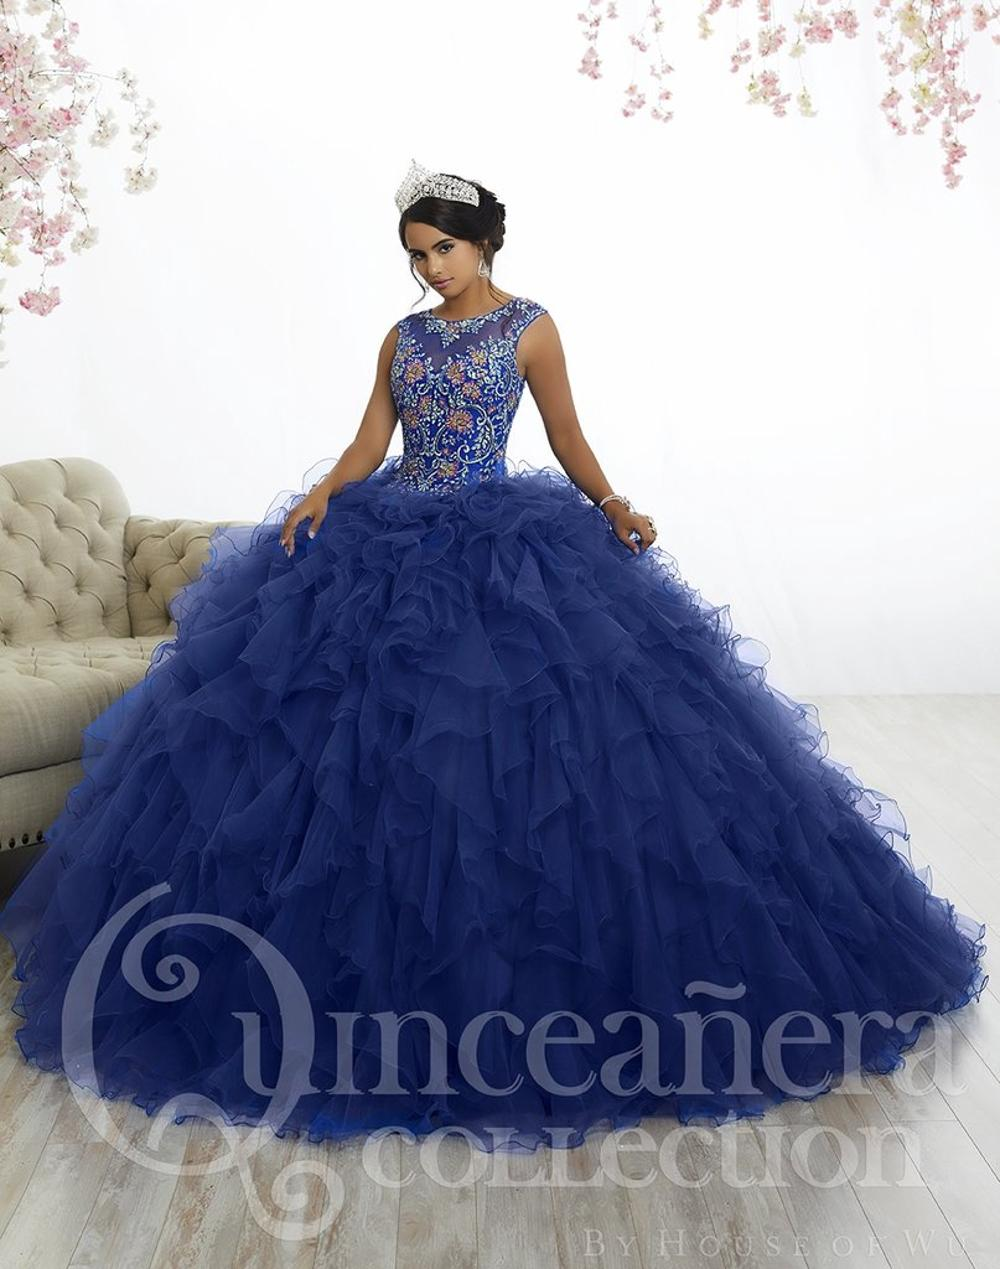 70efdae863 Royal Blue Tulle Ruffles Quinceanera Dresses 2018 Top Quality Ball Gowns  Illusion Neck Beaded Sweet 16 Dresses